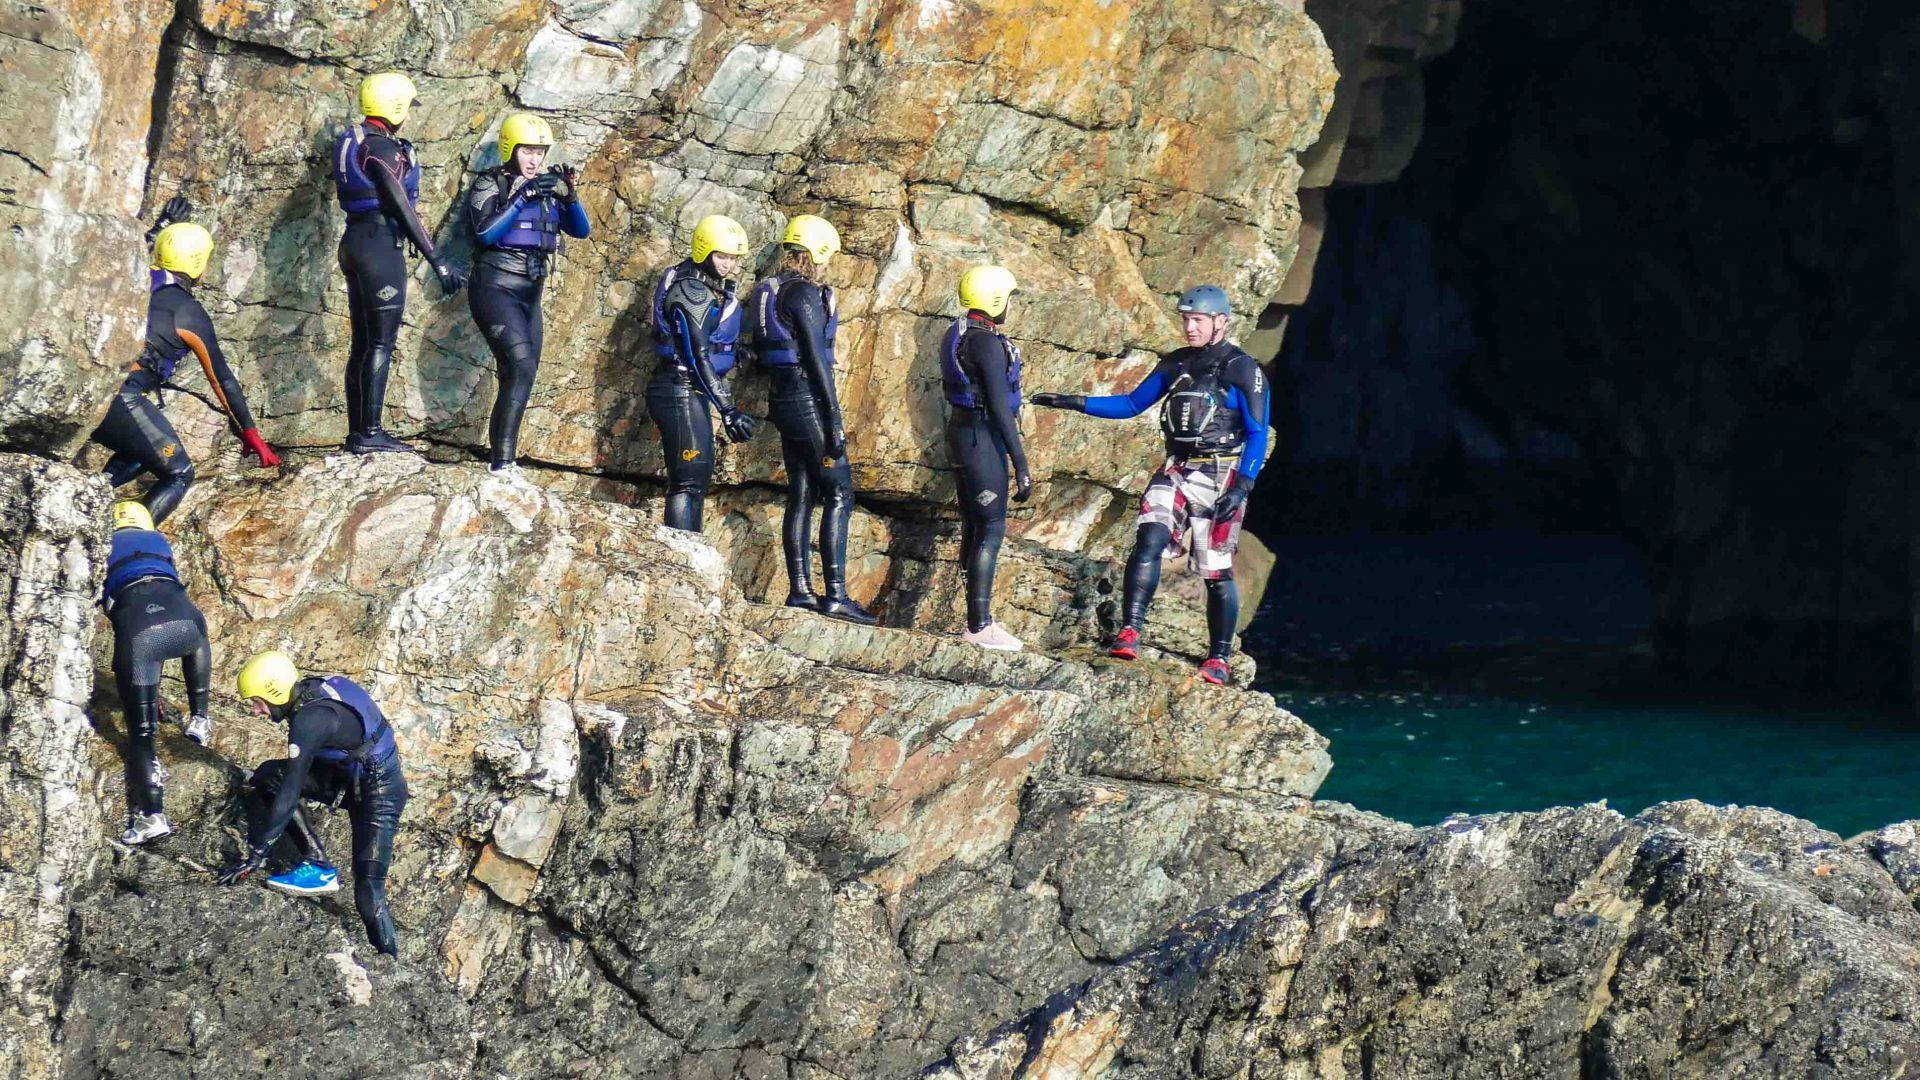 An instructor talks with the group while standing on a rock edge on the coasteering adventure.